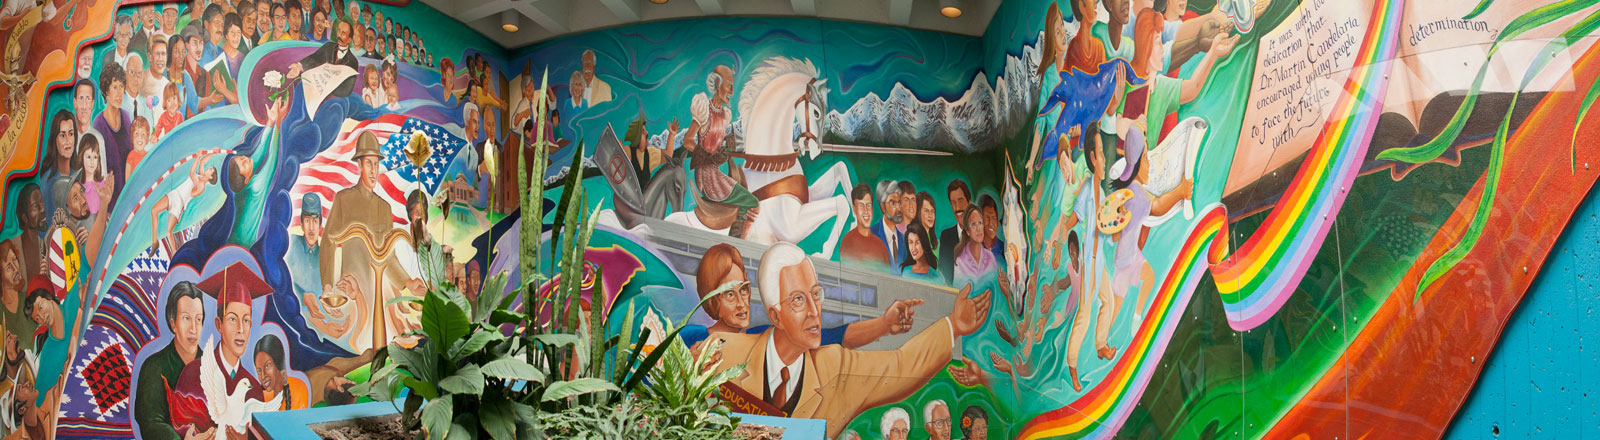 candelaria hall mural